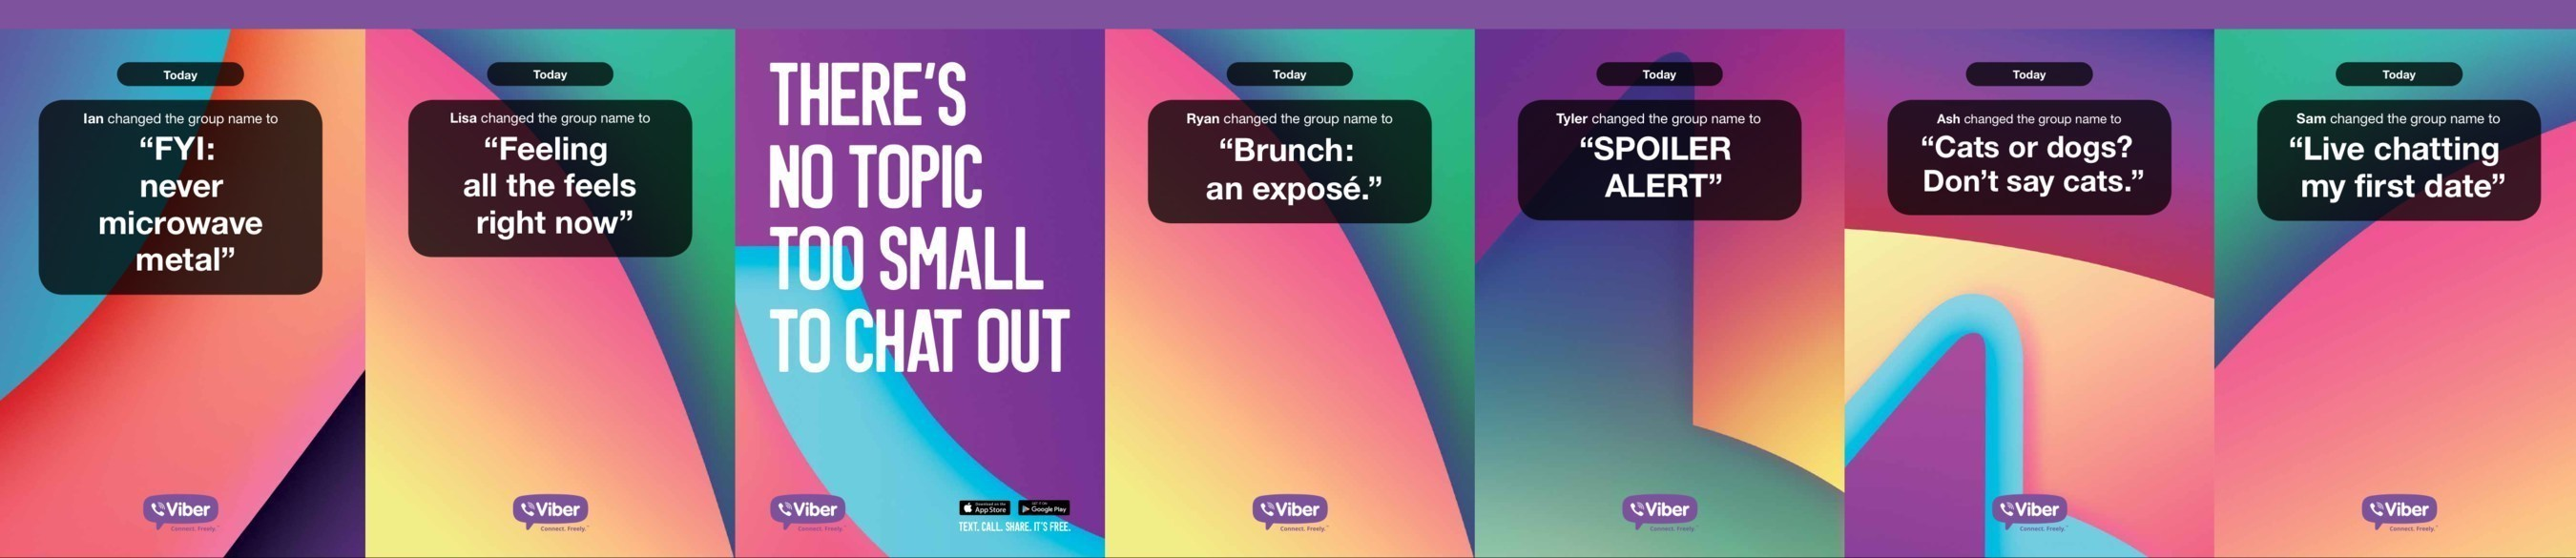 Viber Celebrates The Art Of The Daily Conversation - Launches New Brand Platform Called 'Chat'